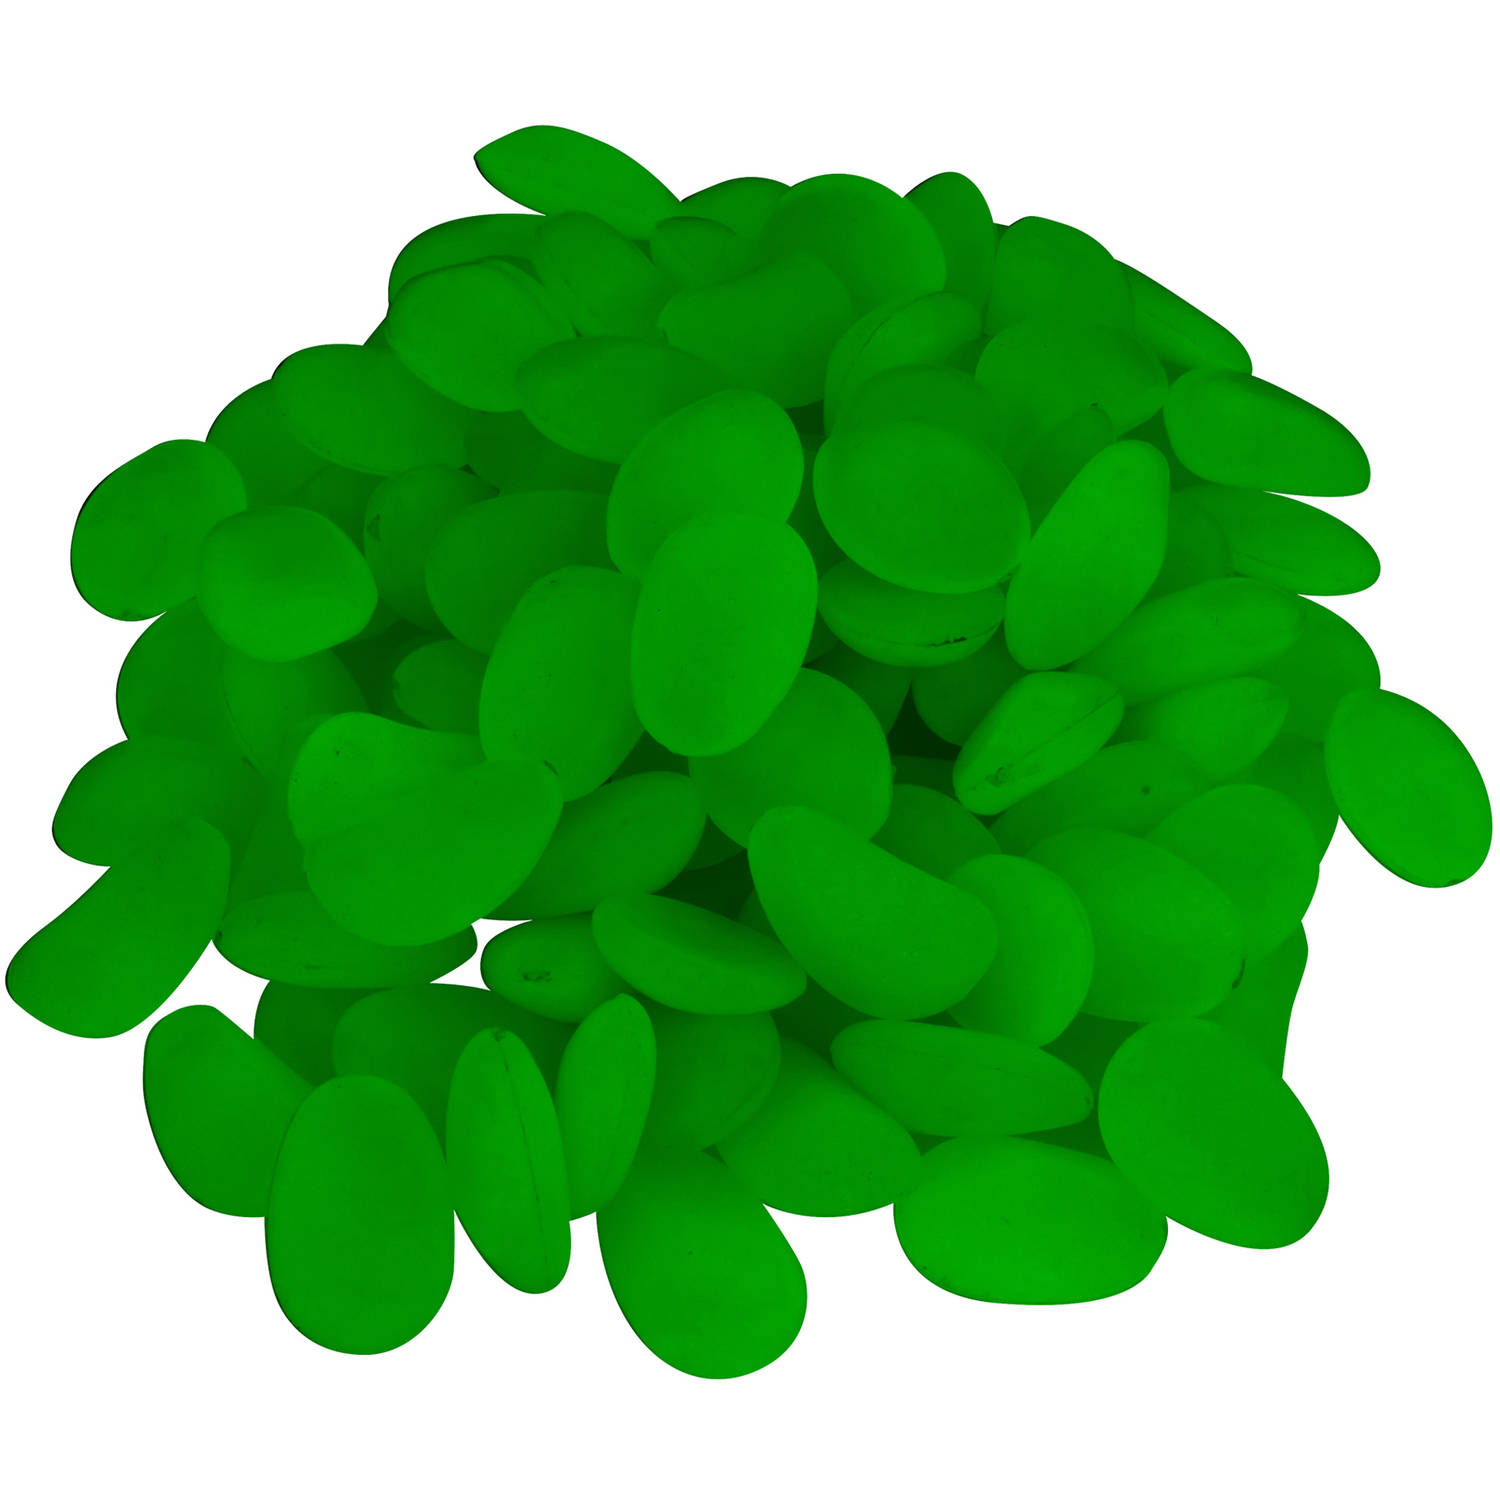 Glow in the Dark Pebbles for Walkways and Decor Outside, Backyard, Garden Decor